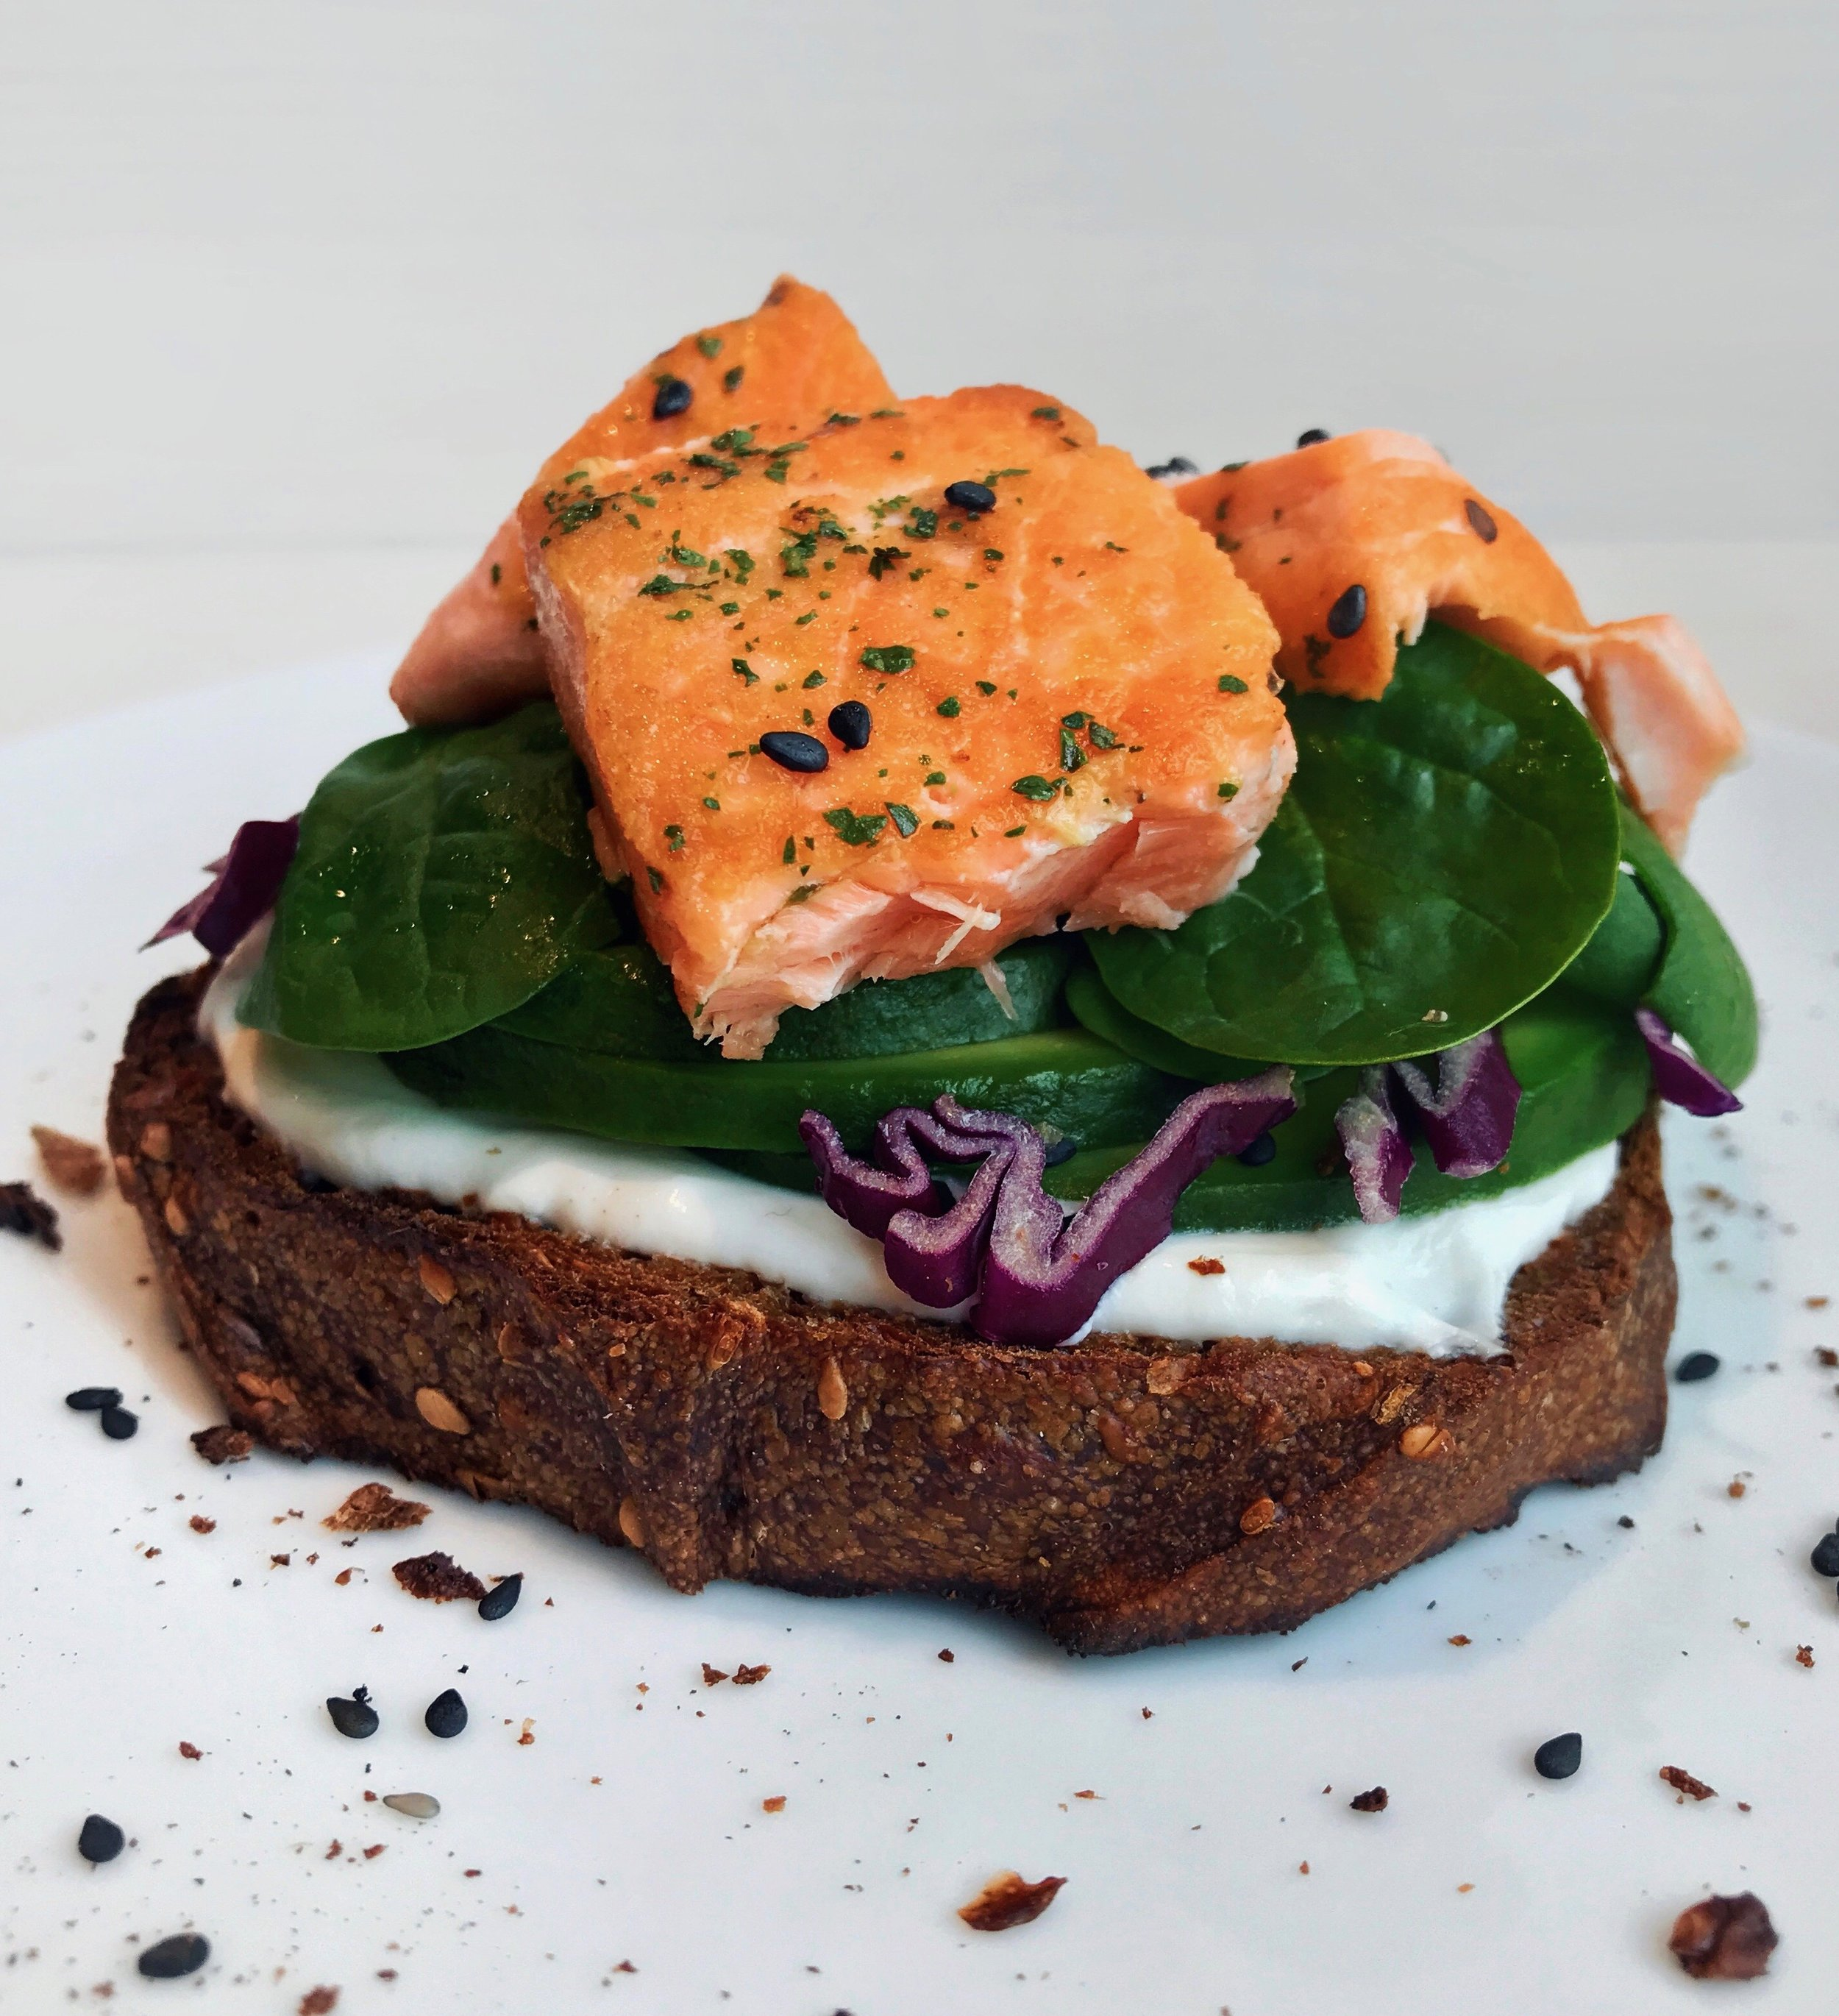 Grilled Salmon & Cream Cheese